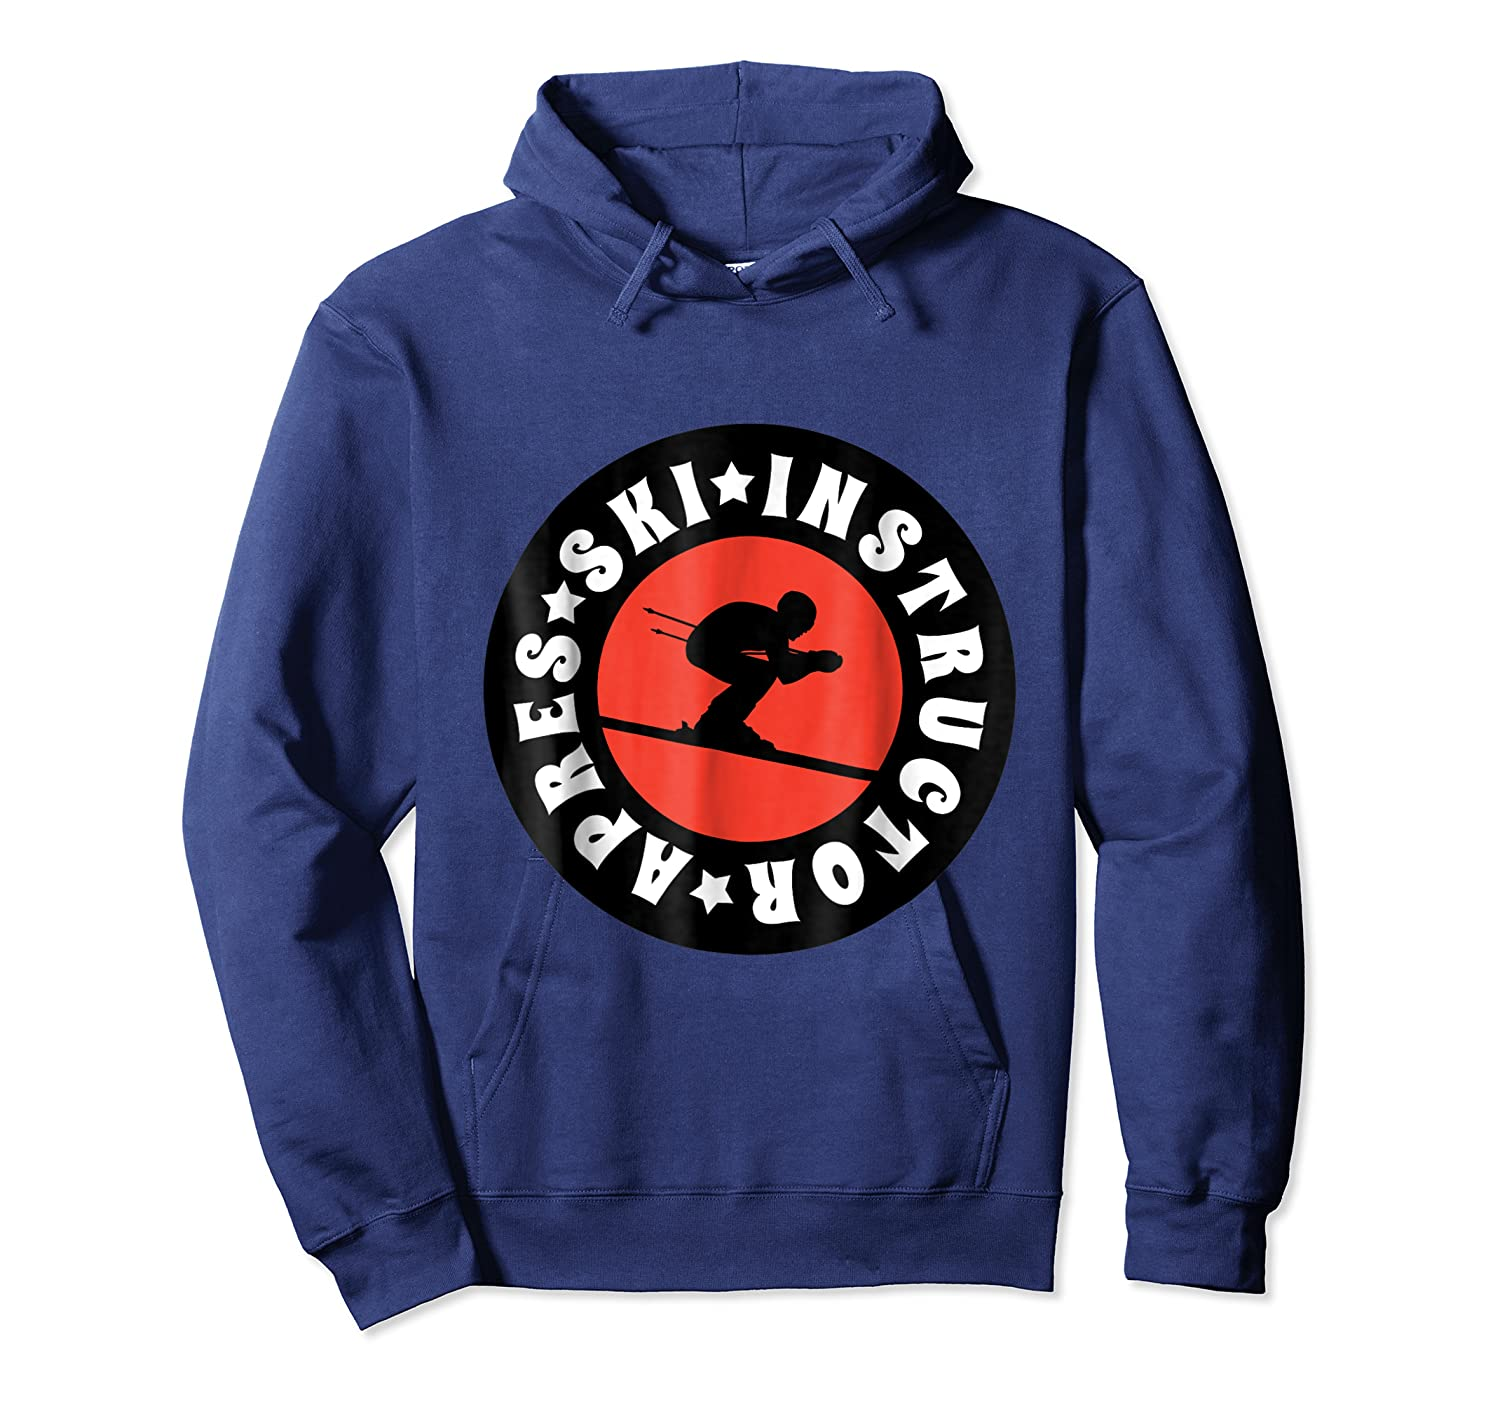 Apres Ski Skiing Instructor T Shirt Usa, France Lover Gift Unisex Pullover Hoodie